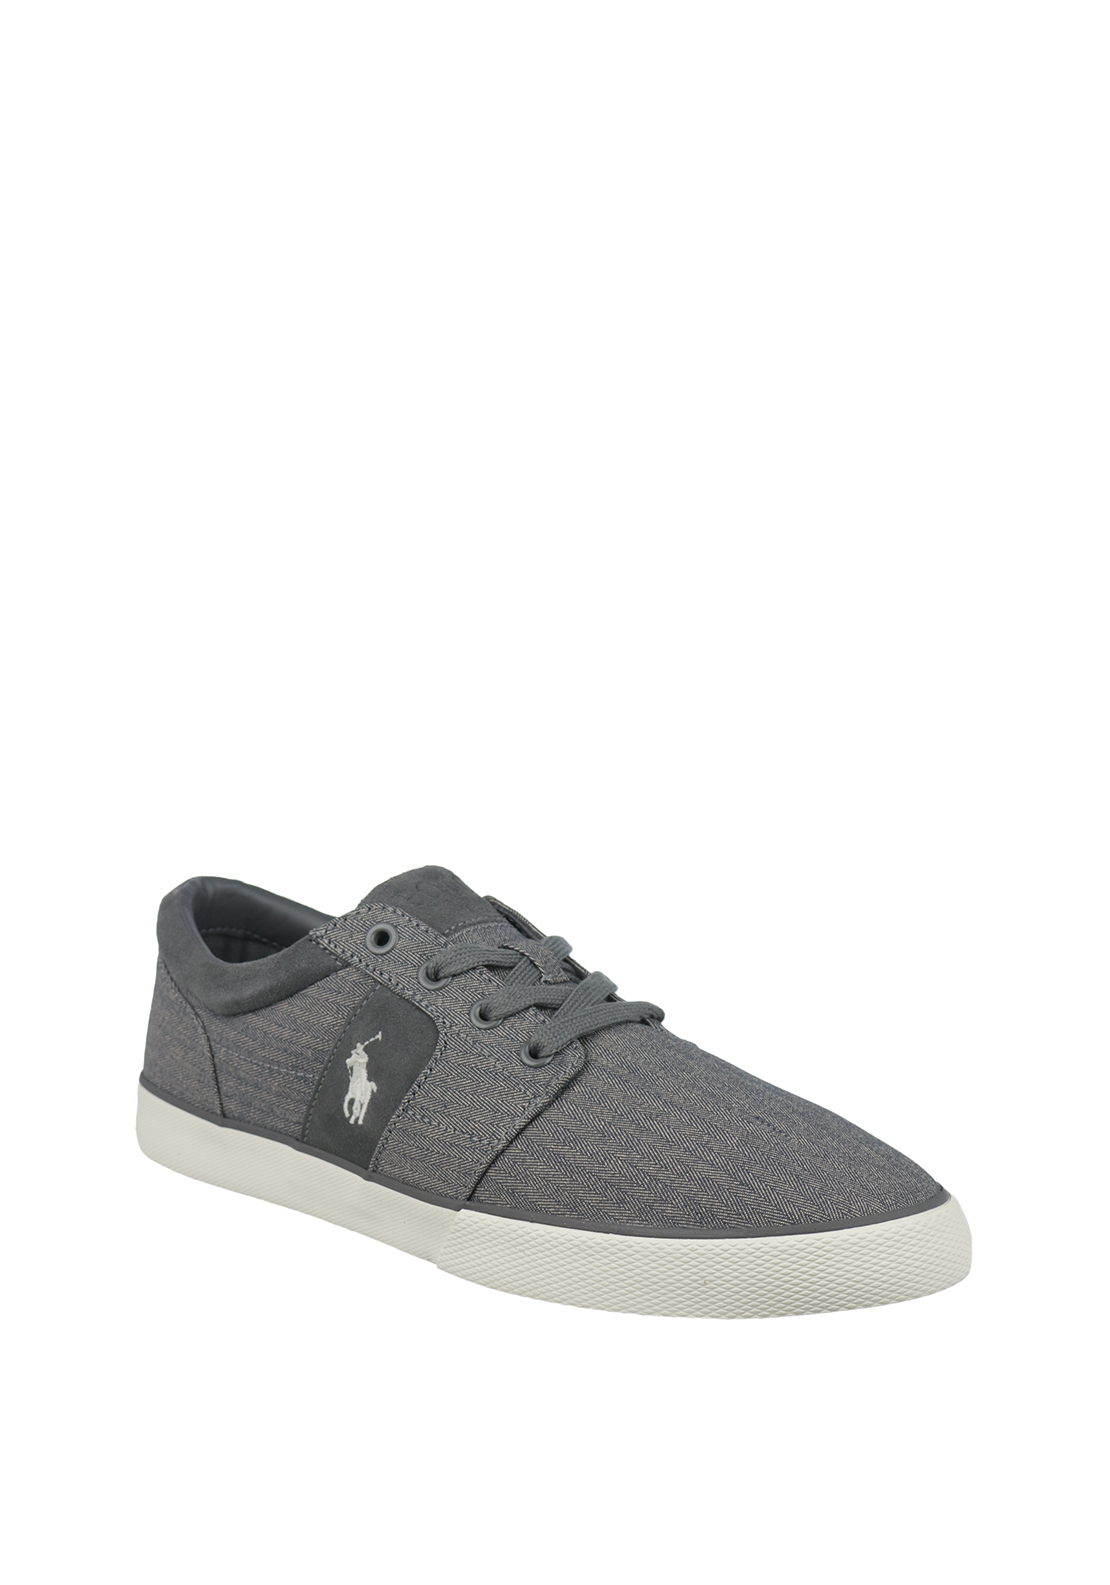 Ralph Lauren Polo Mens Halmore II Herringbone Trainers, Grey